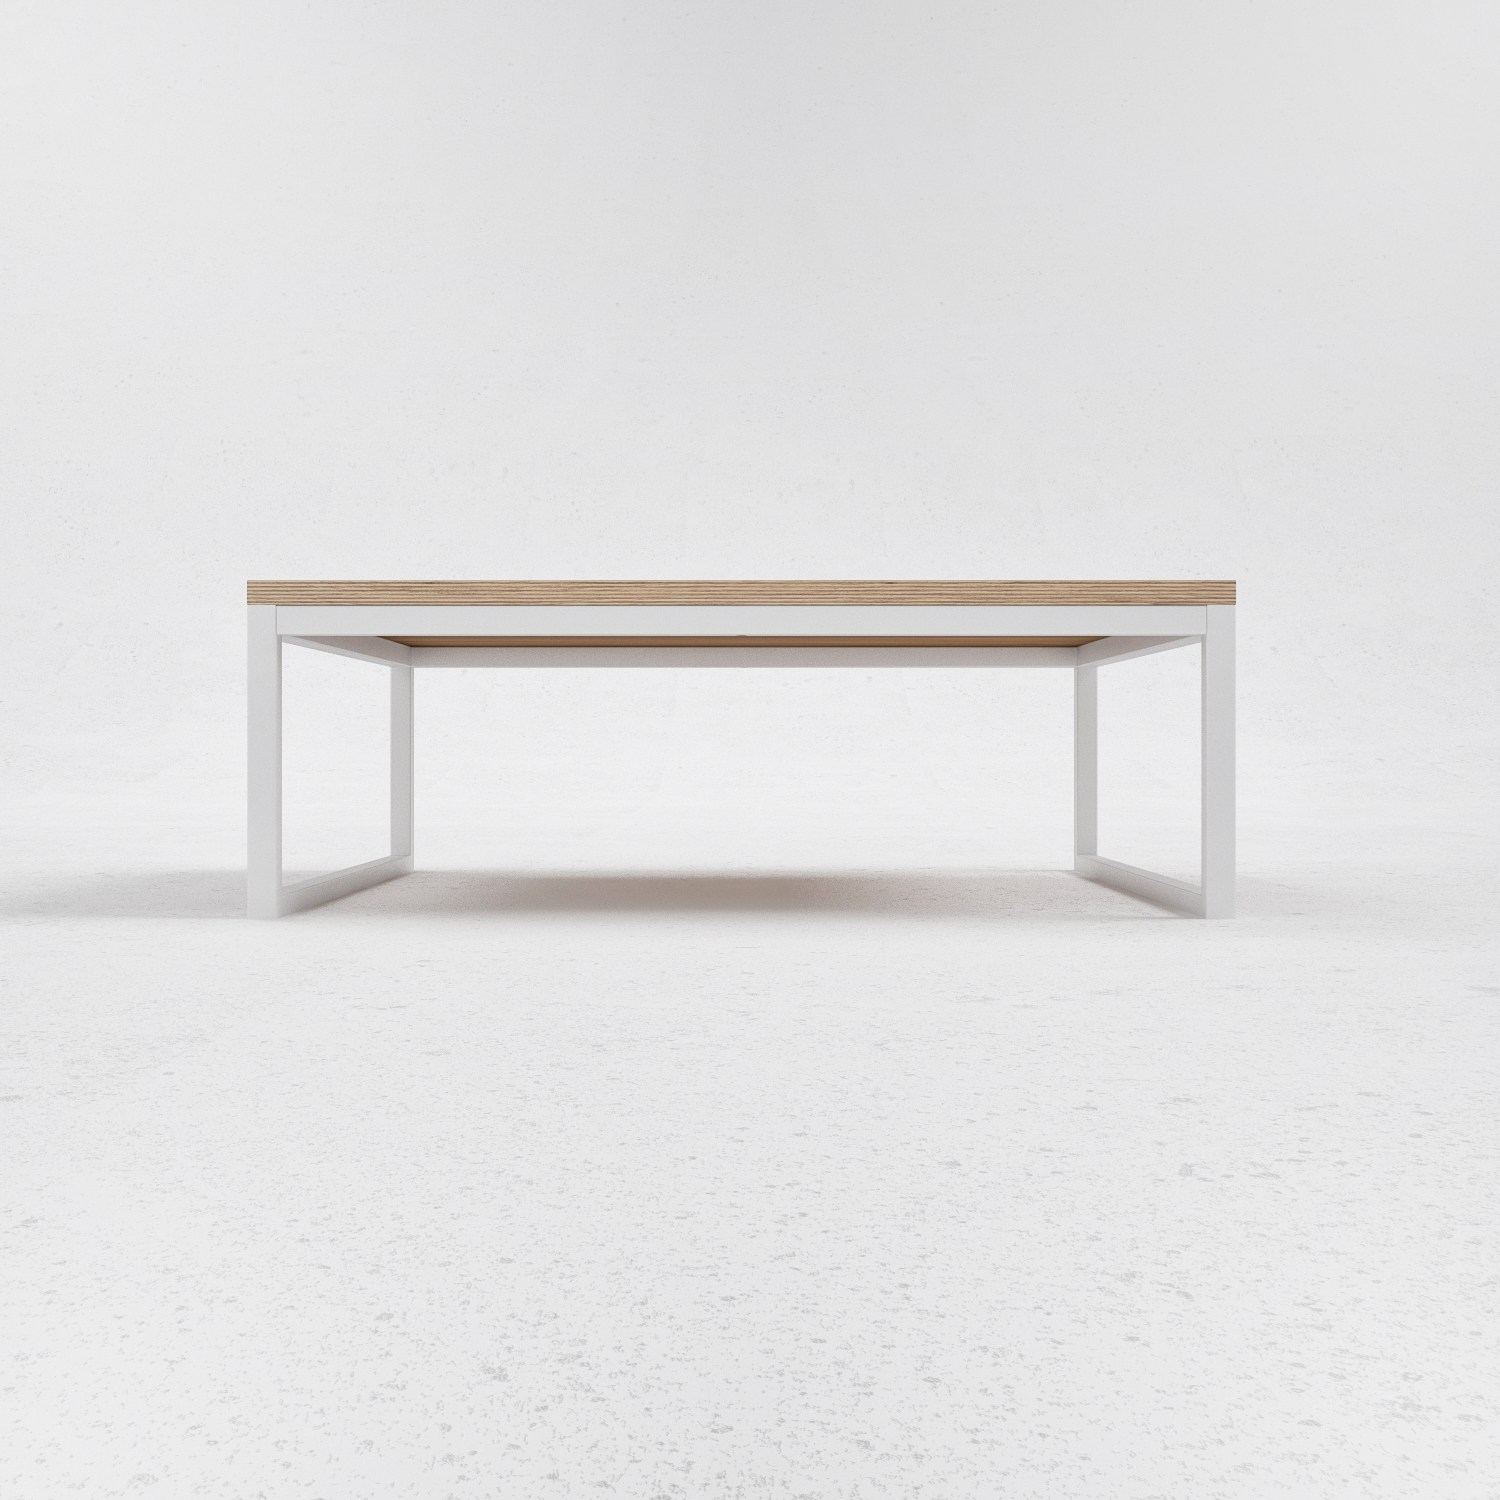 Low Steel And Wood Coffee Table O3 By Odesd2 Design Svyatoslav Zbroy